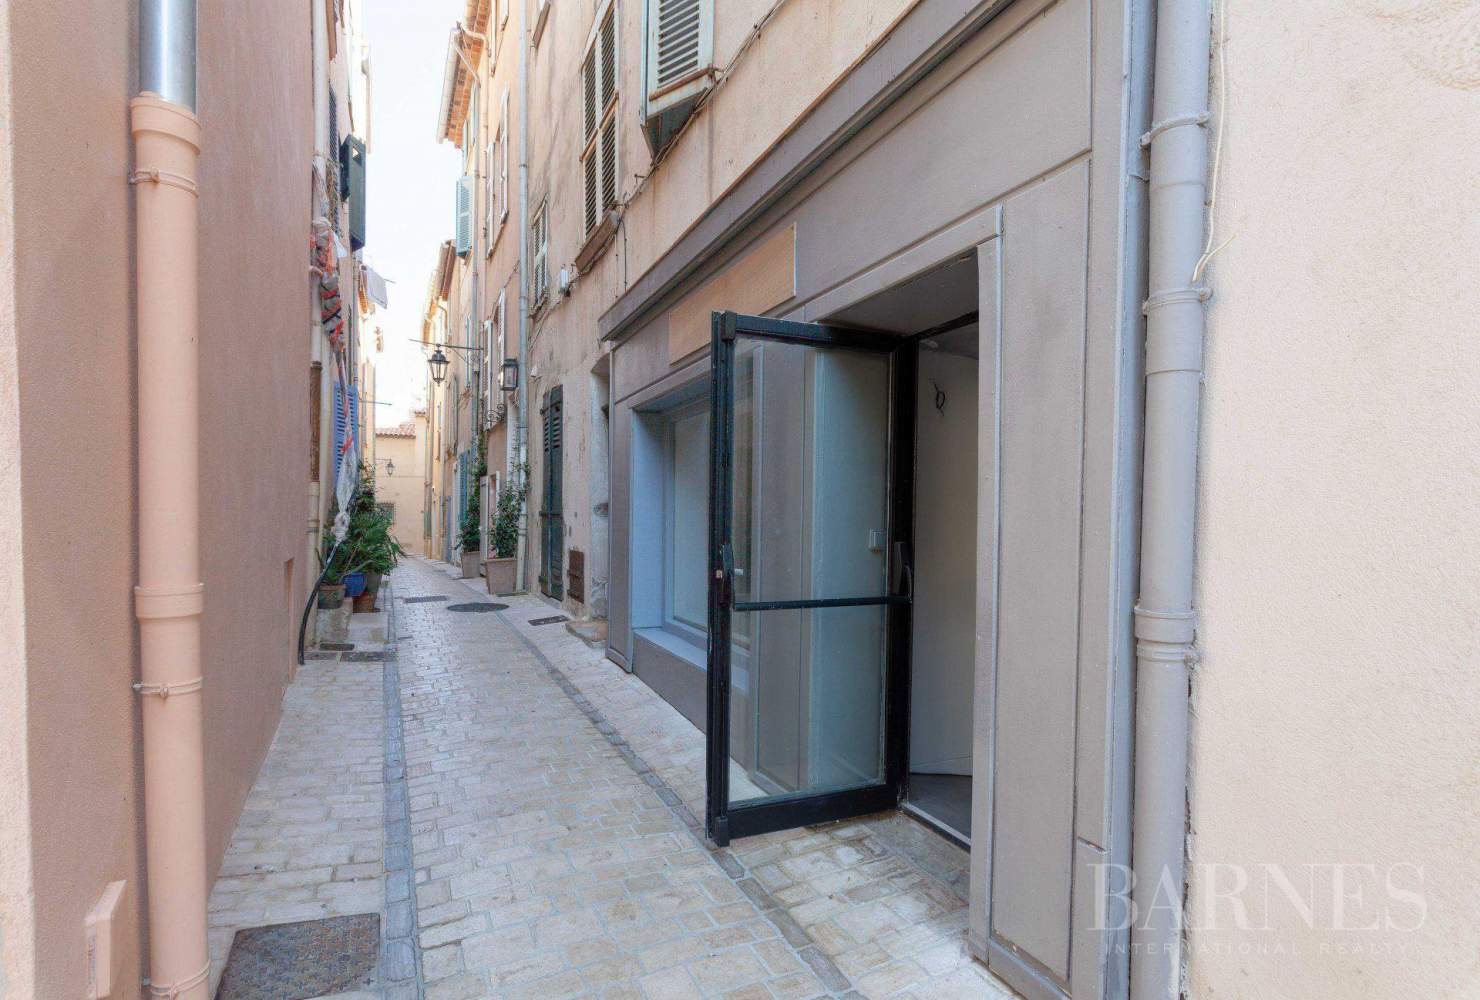 SAINT-TROPEZ - Commercial space in the heart of downtown picture 1